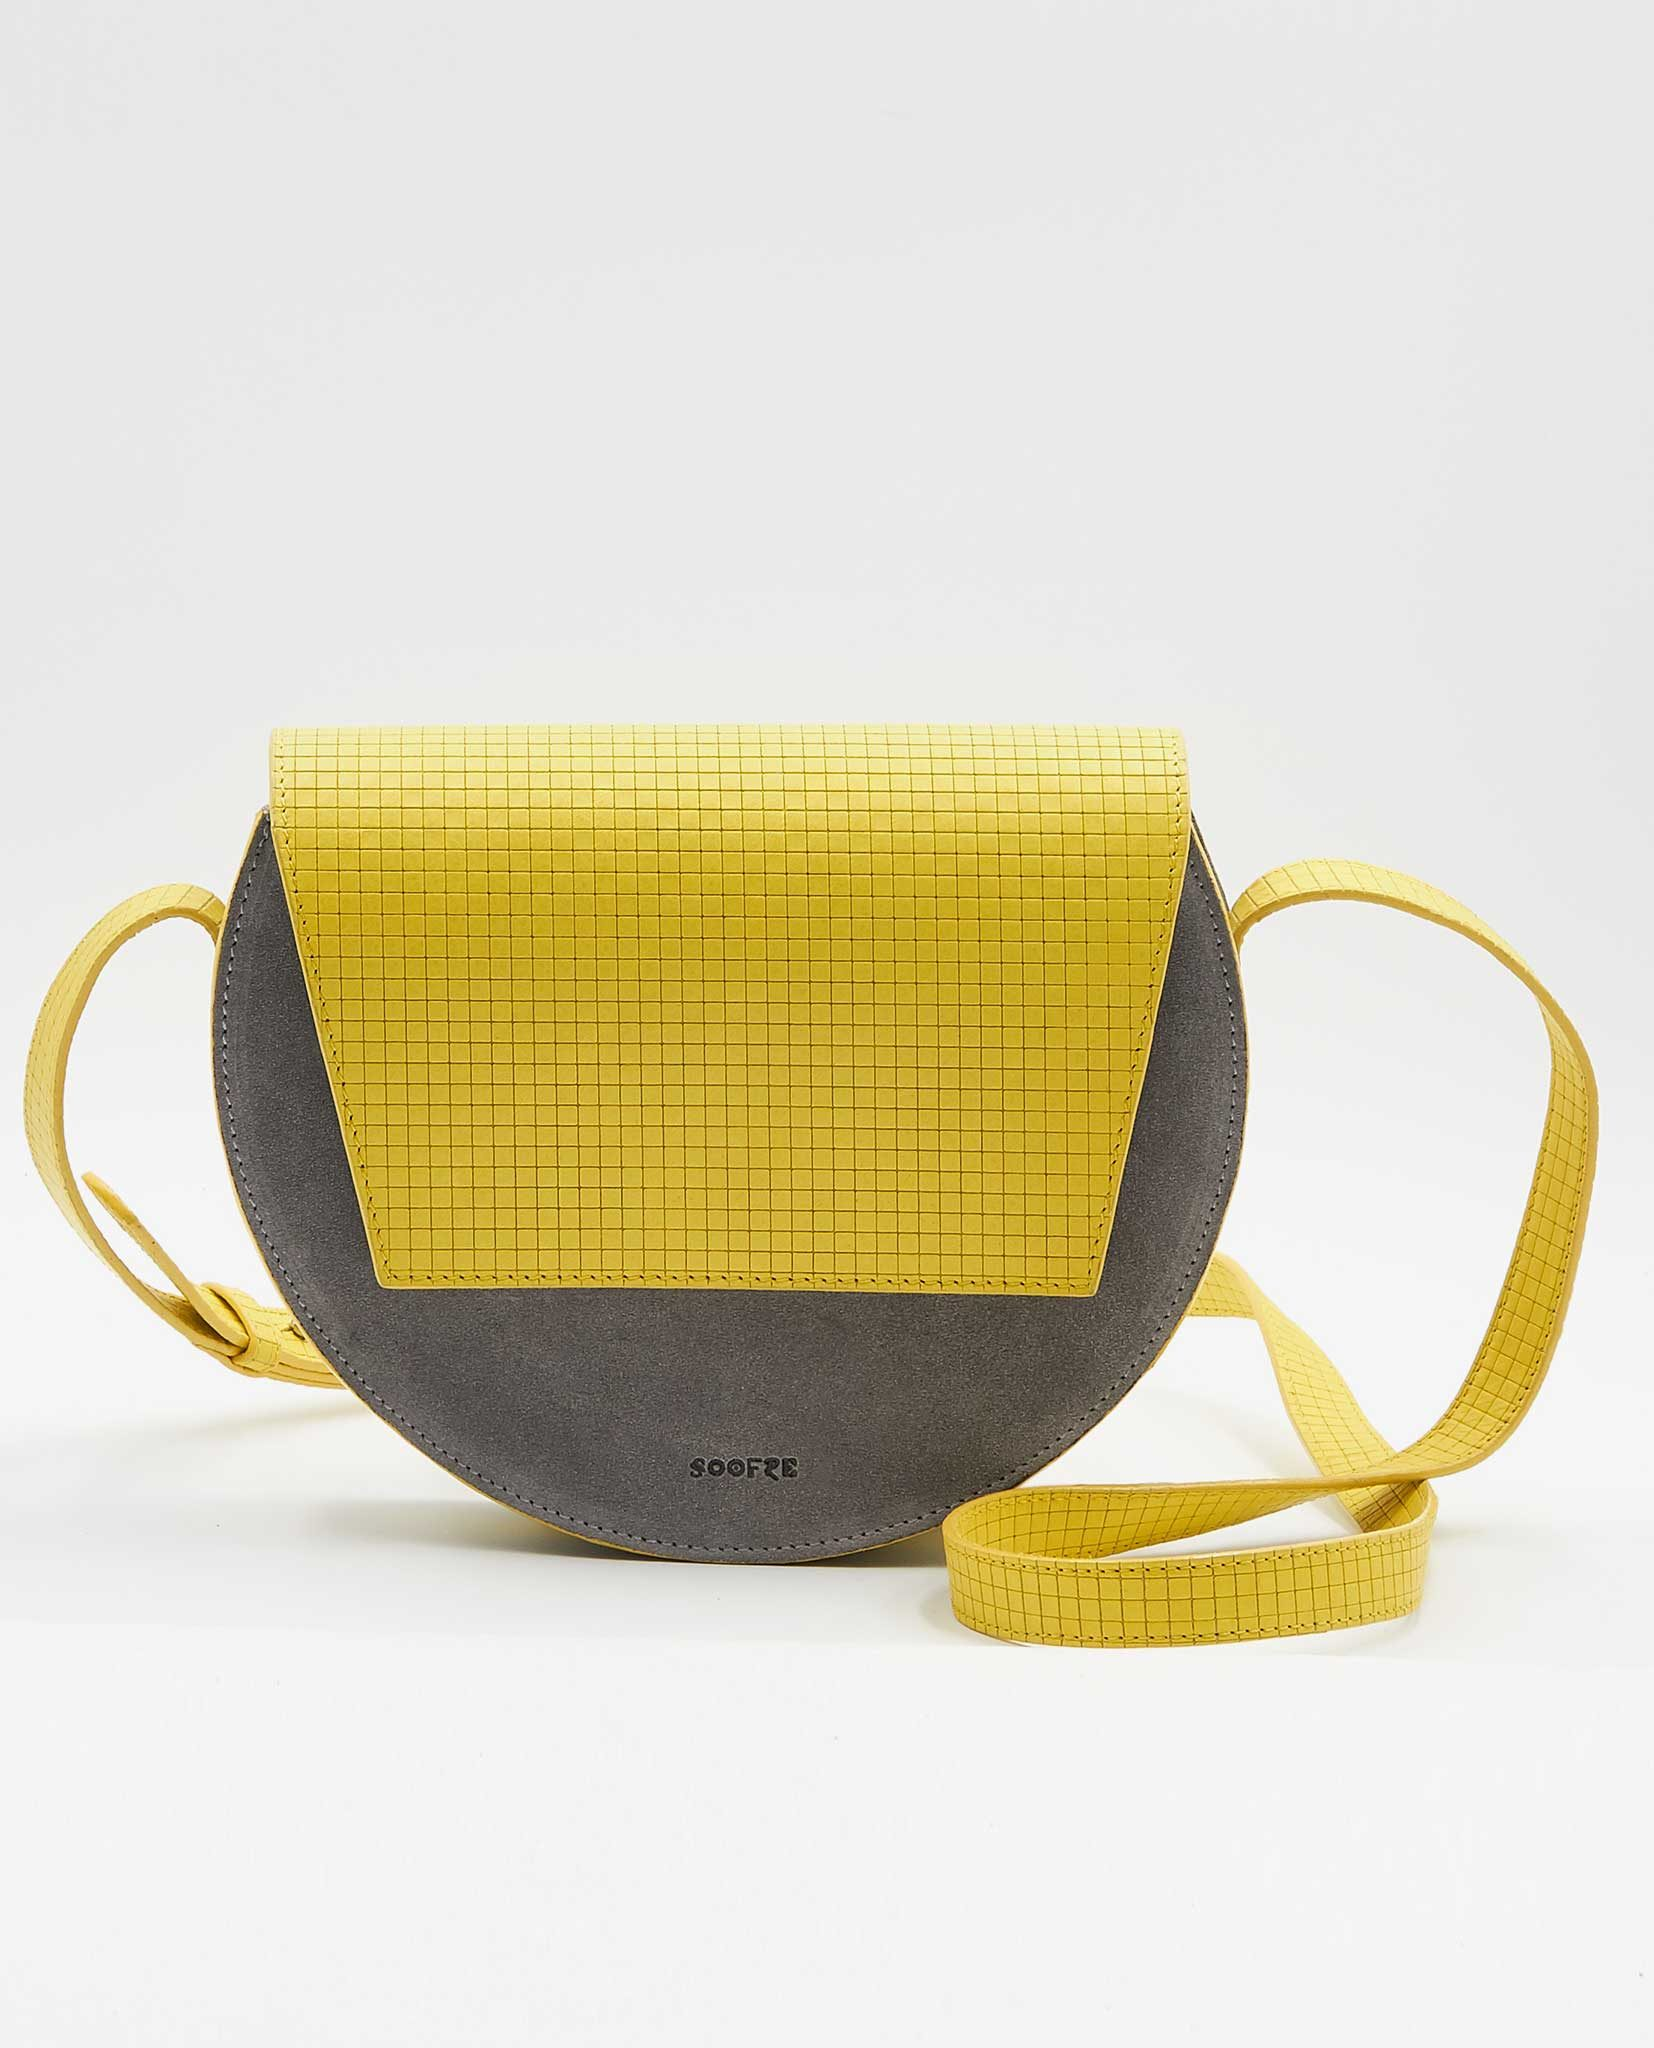 SOOFRE-Berlin-unique-Crossbody-Purse-squared-yellow-dove-grey-FRONT